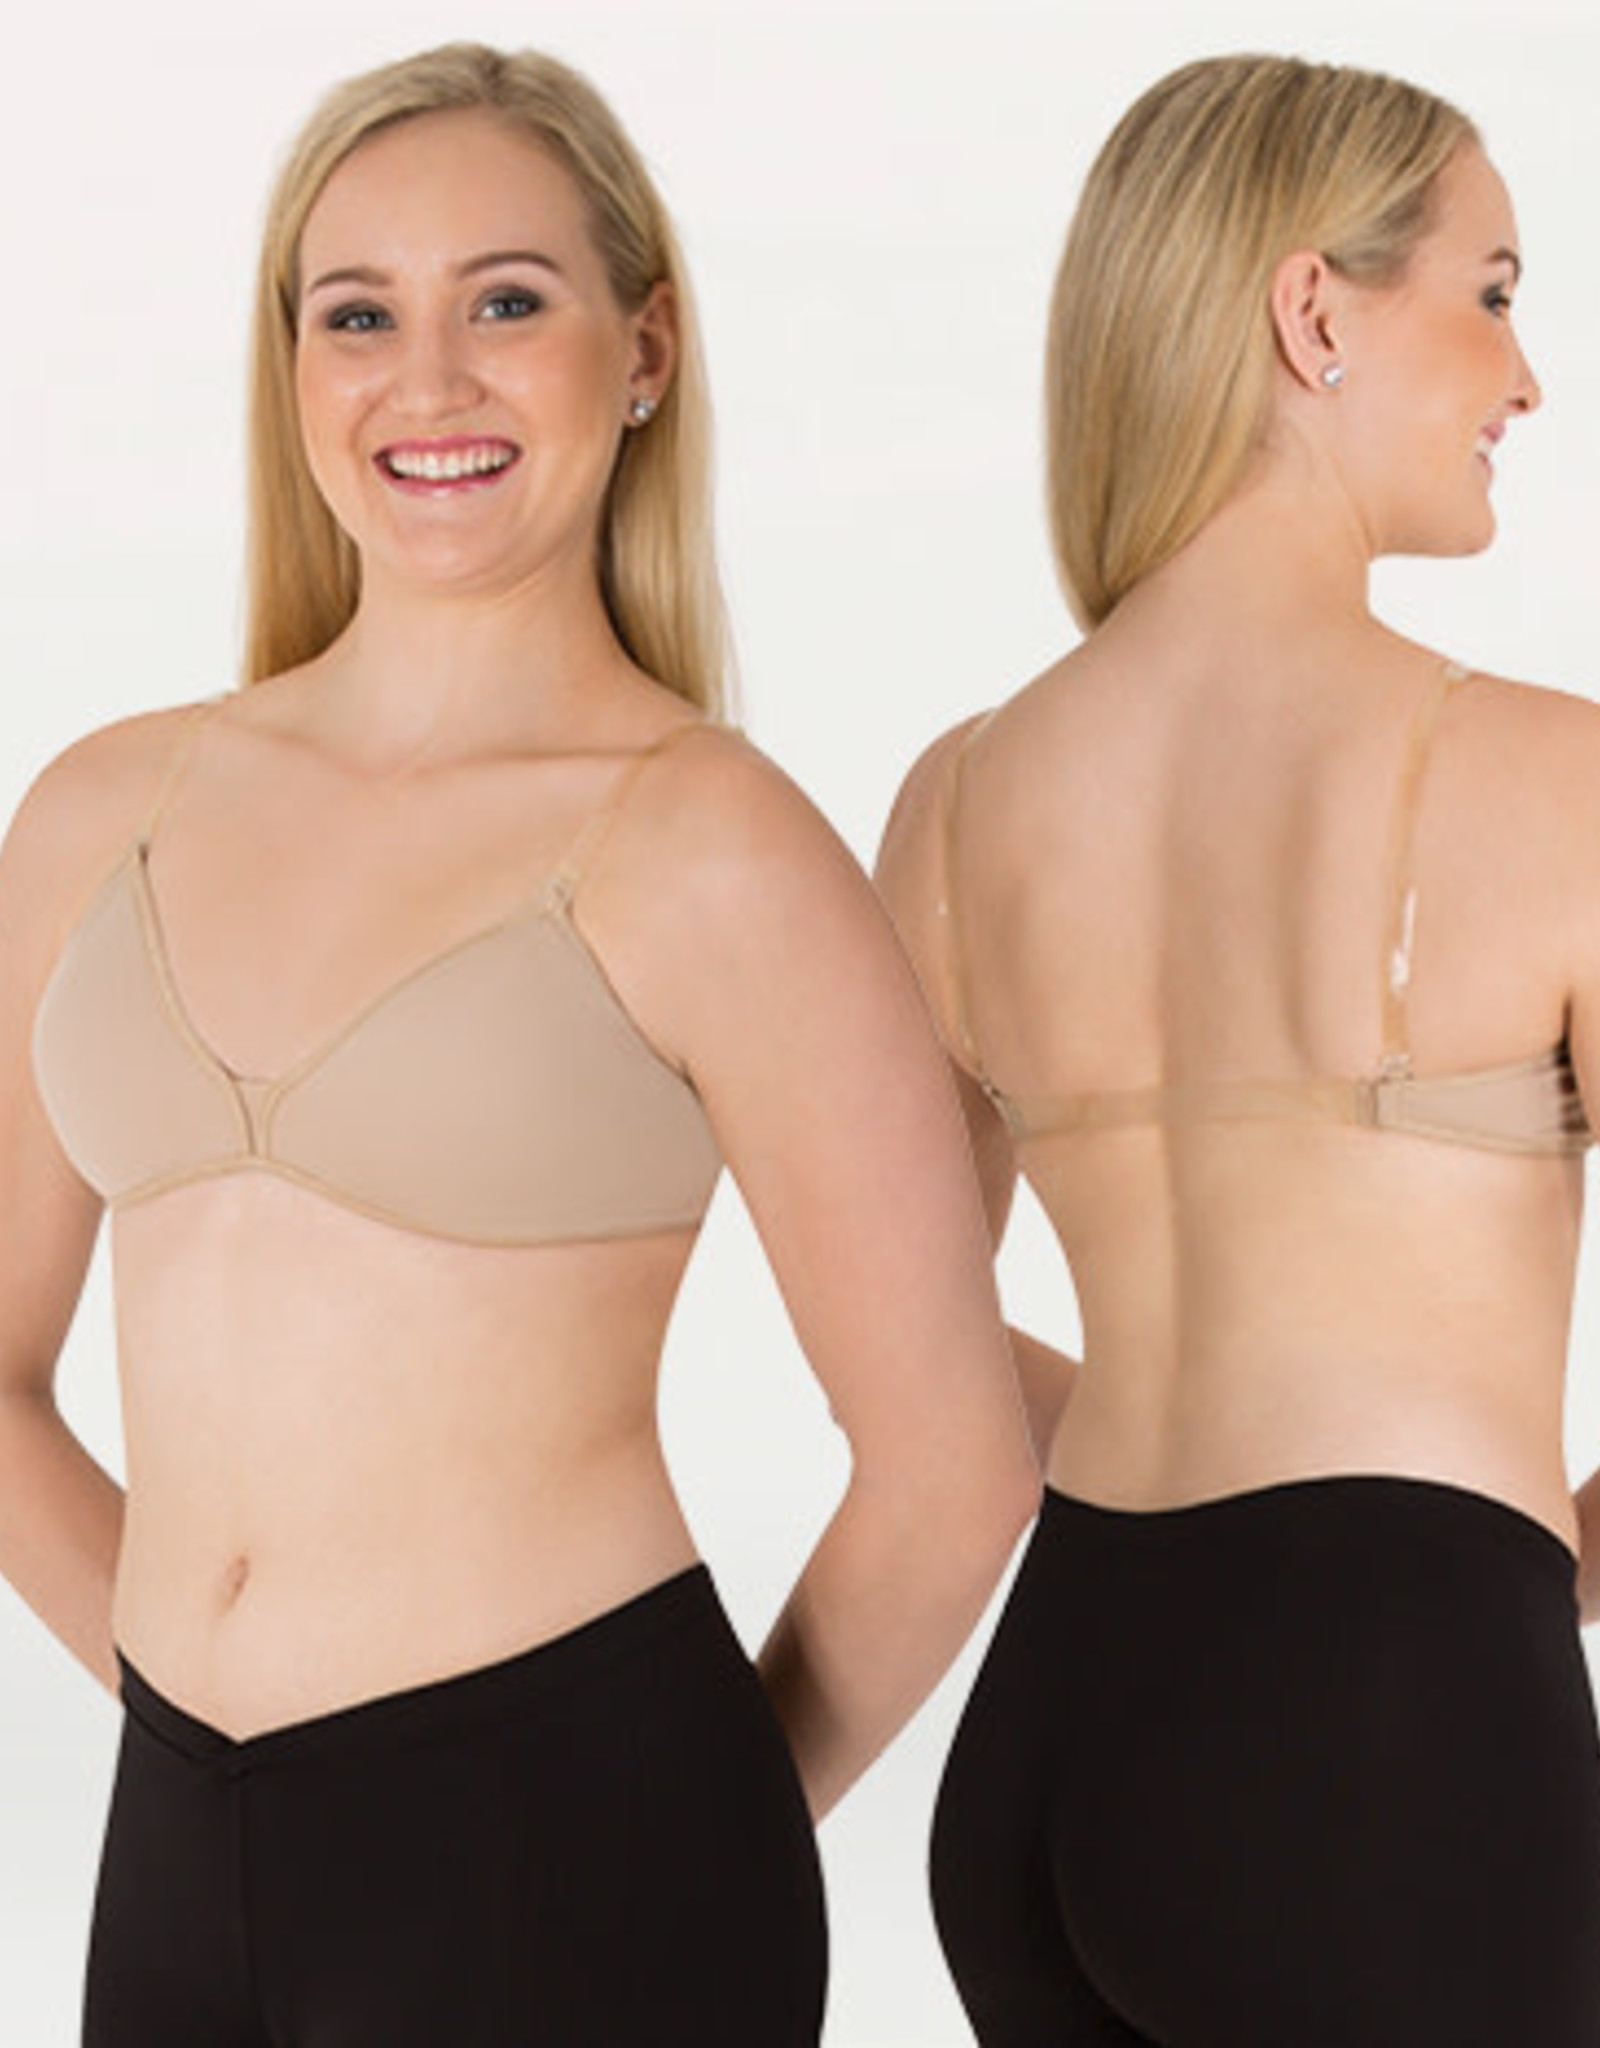 Body Wrappers / Angelo Luzio SOUTIEN-GORGE TRIANGLE AVEC PAD